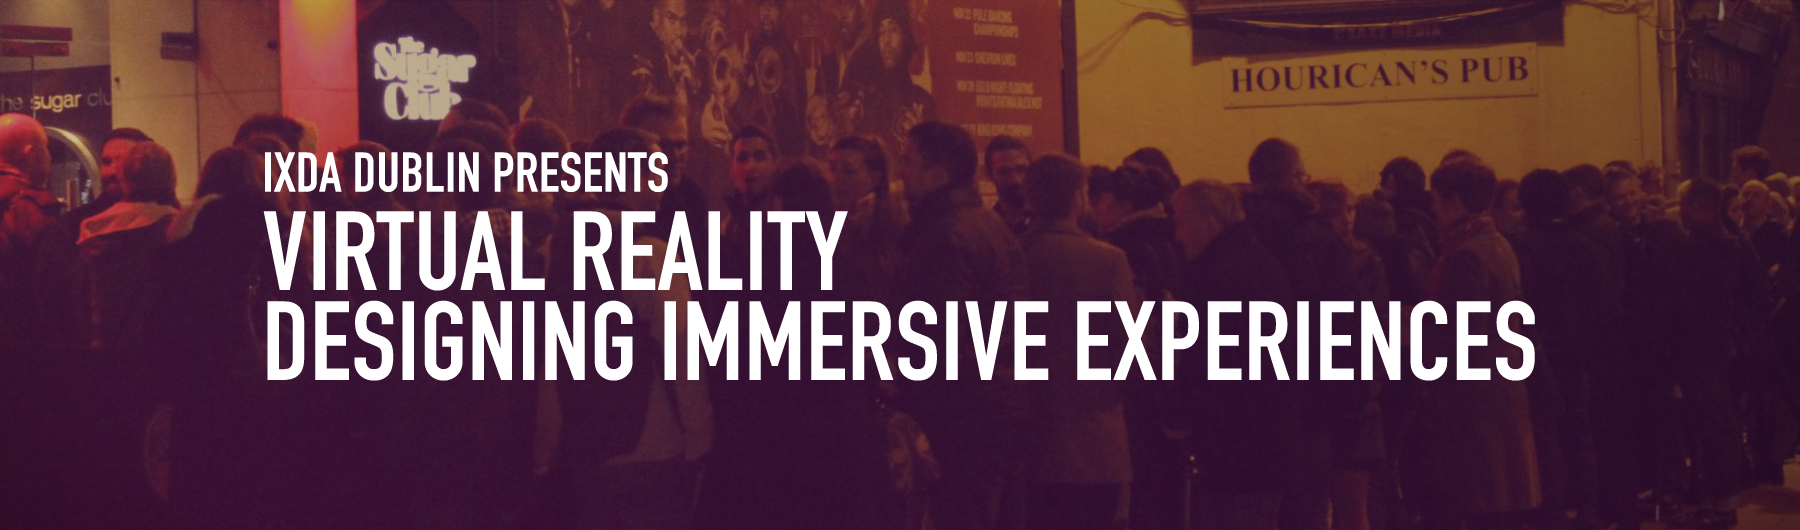 Virtual Reality - Designing Immersive Experiences